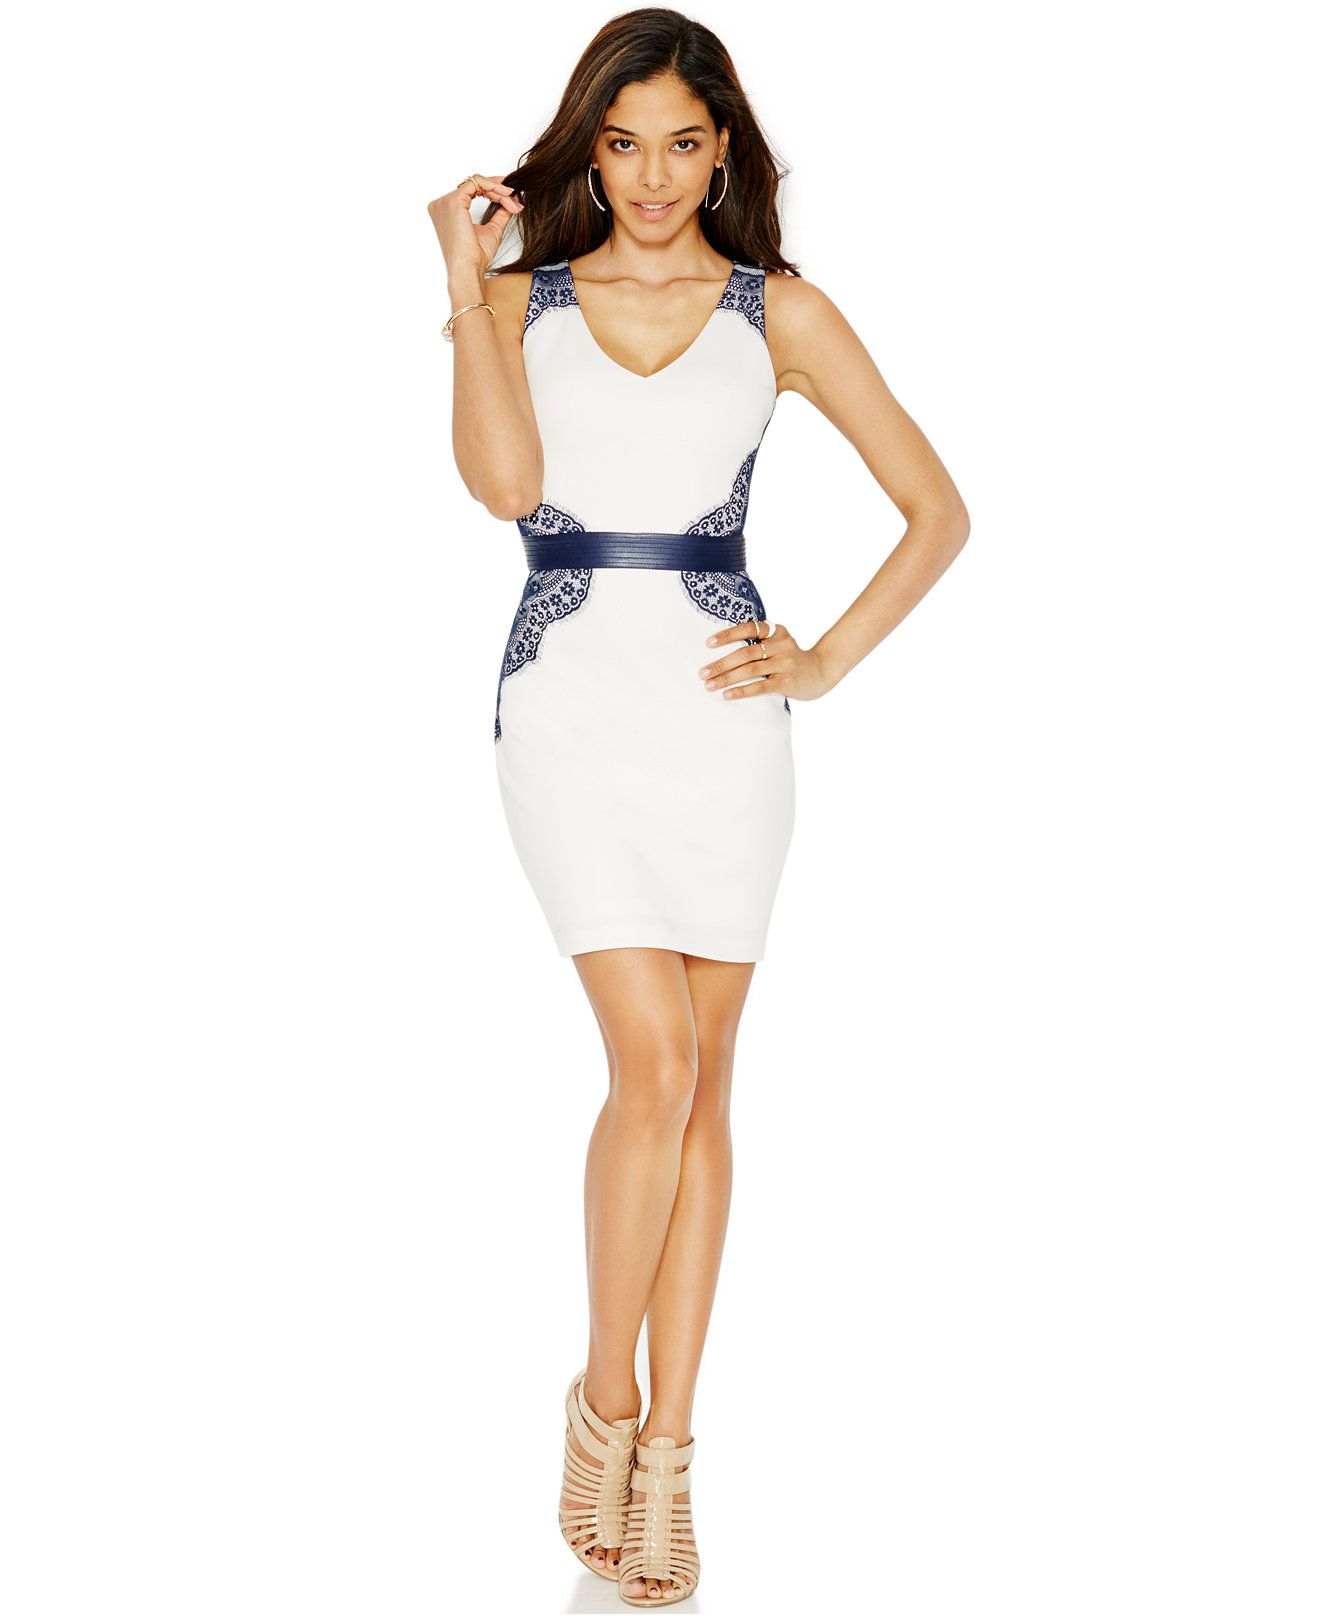 GUESS Lace Belted Bodycon Dress - Dresses - Women - Macy's ...